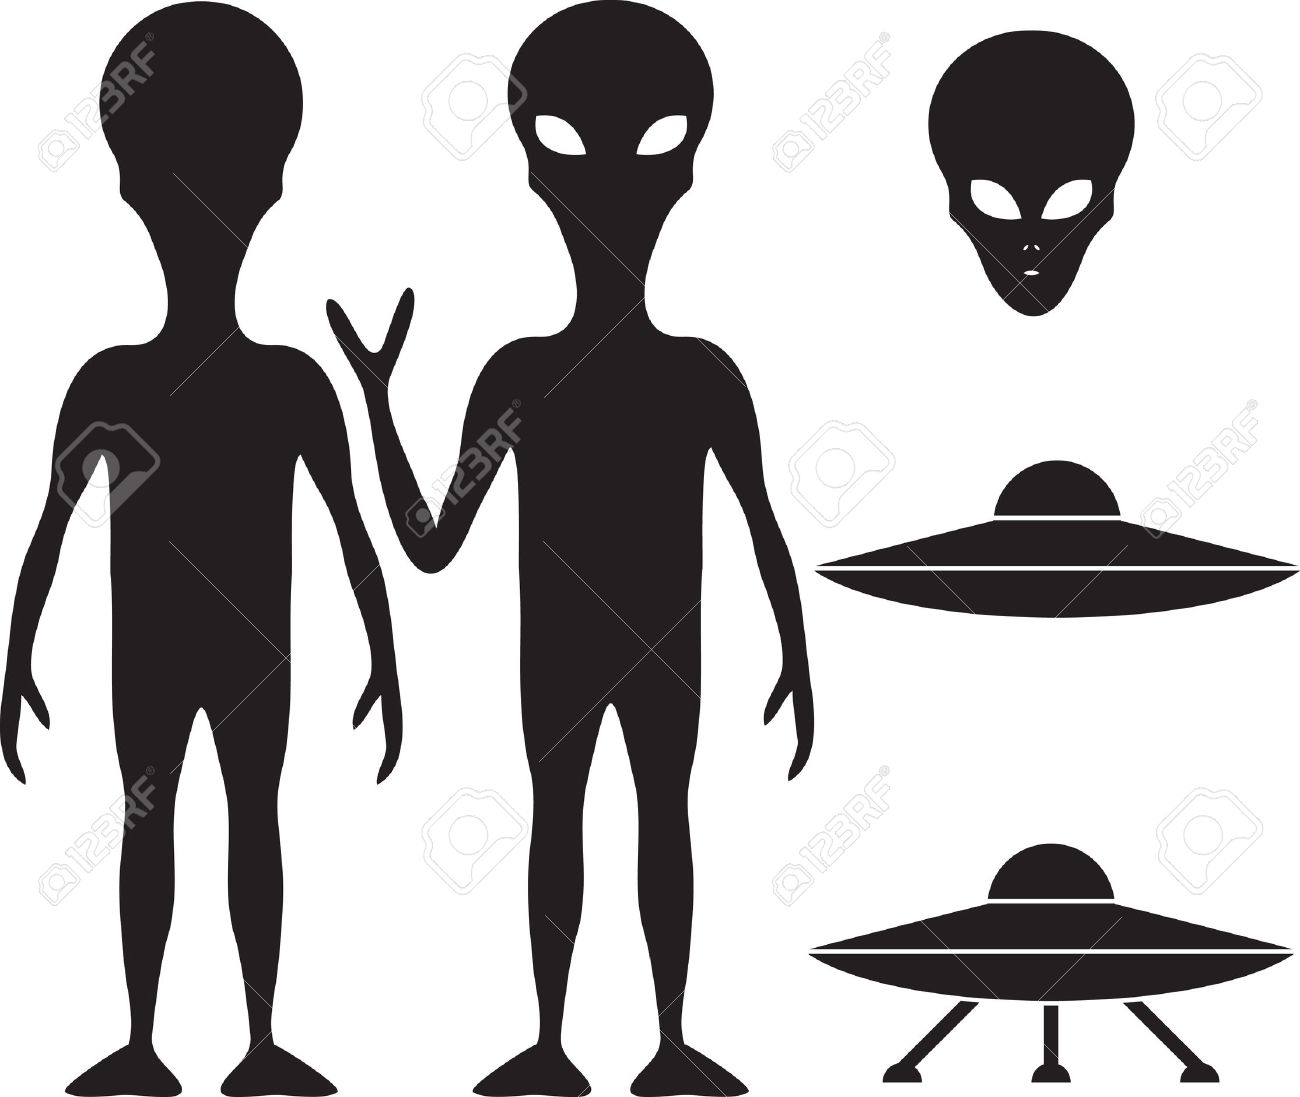 alien and ufo silhouette set royalty free cliparts vectors and